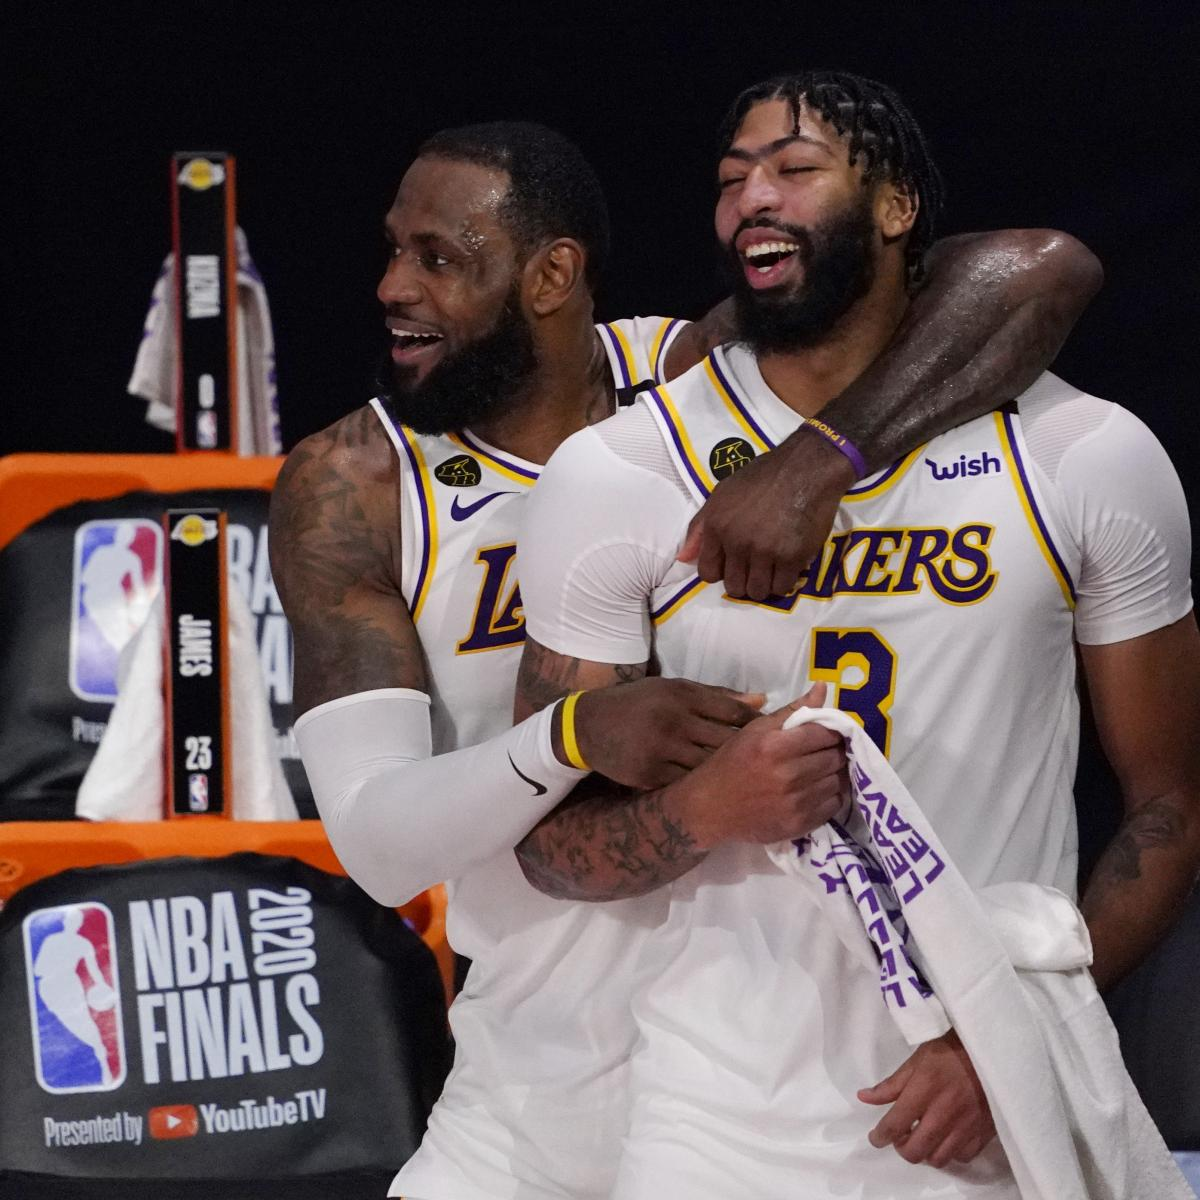 Lakers Championship 2020 Ring Ceremony Twitter Reaction and Highlights thumbnail